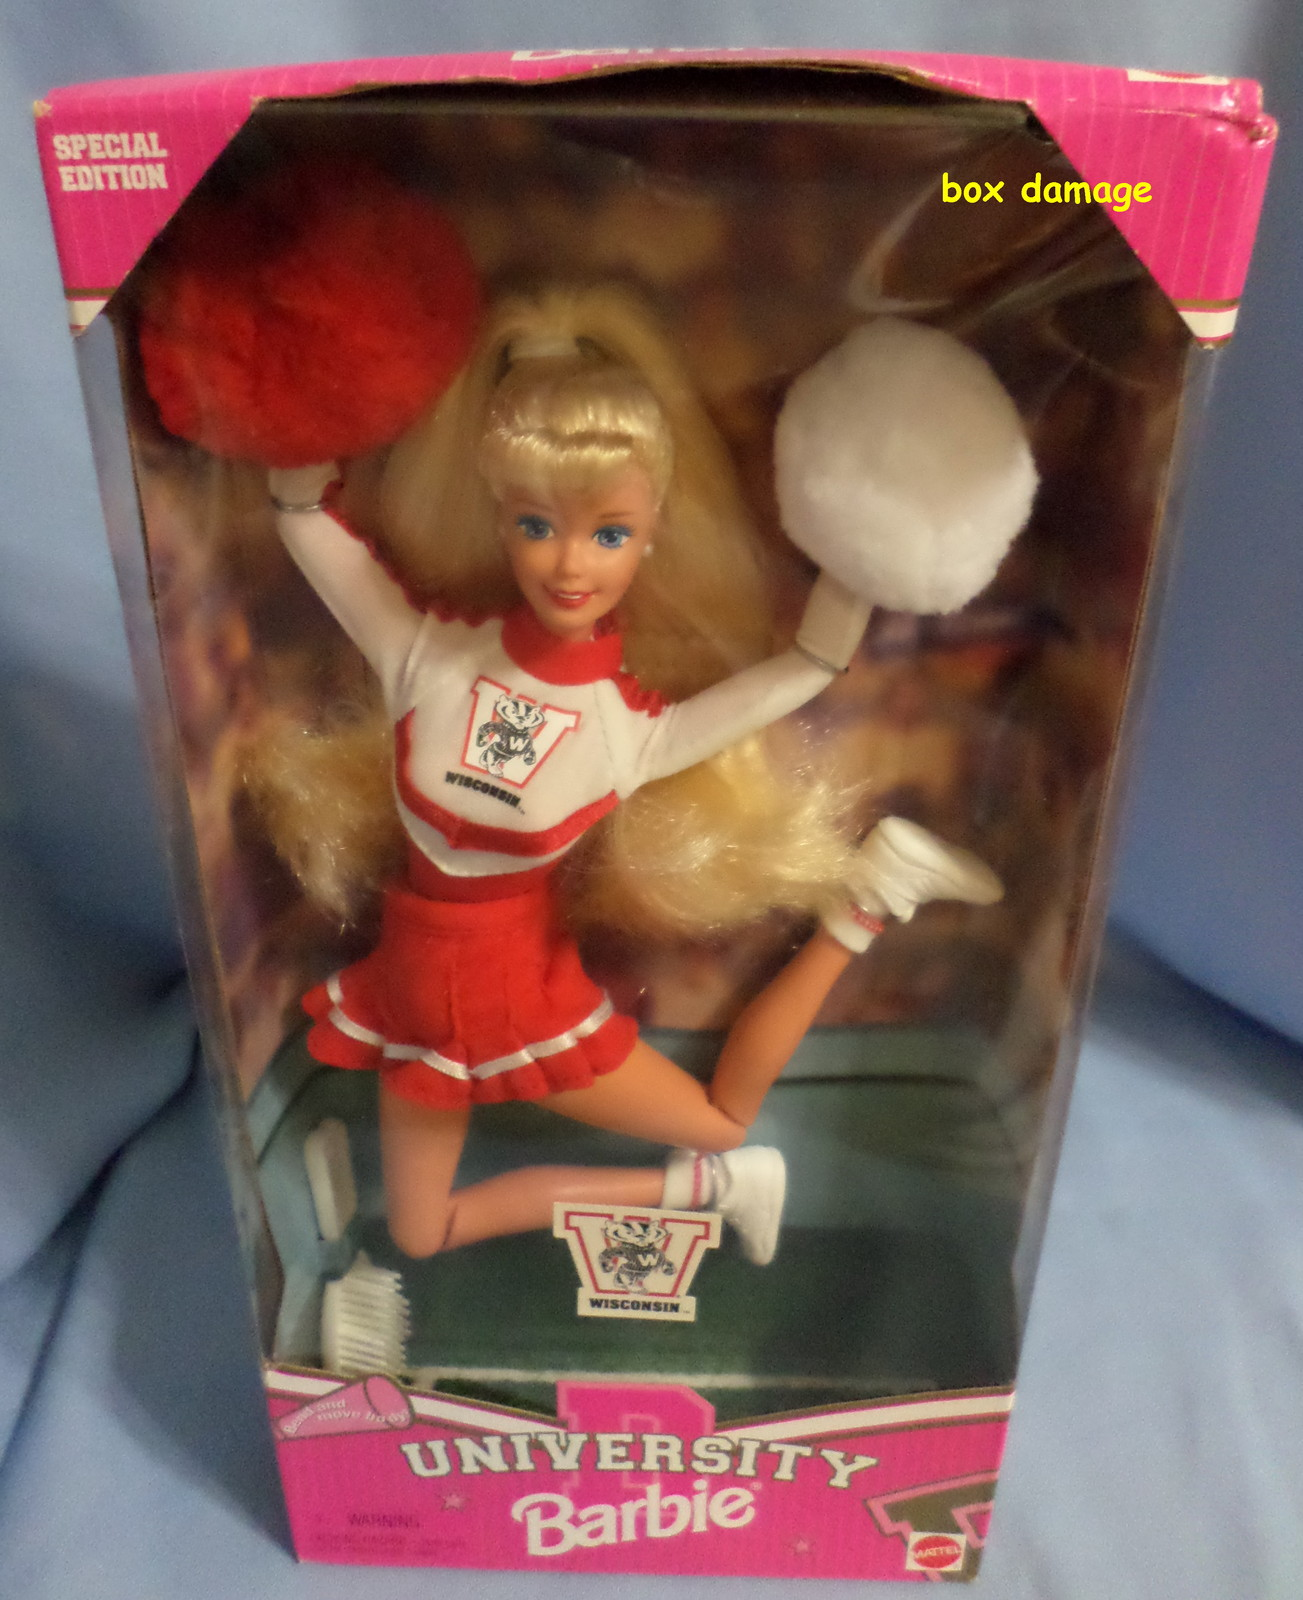 Mattel Barbie Doll University Wisconsin Cheerleader 1996 red white uniform H28